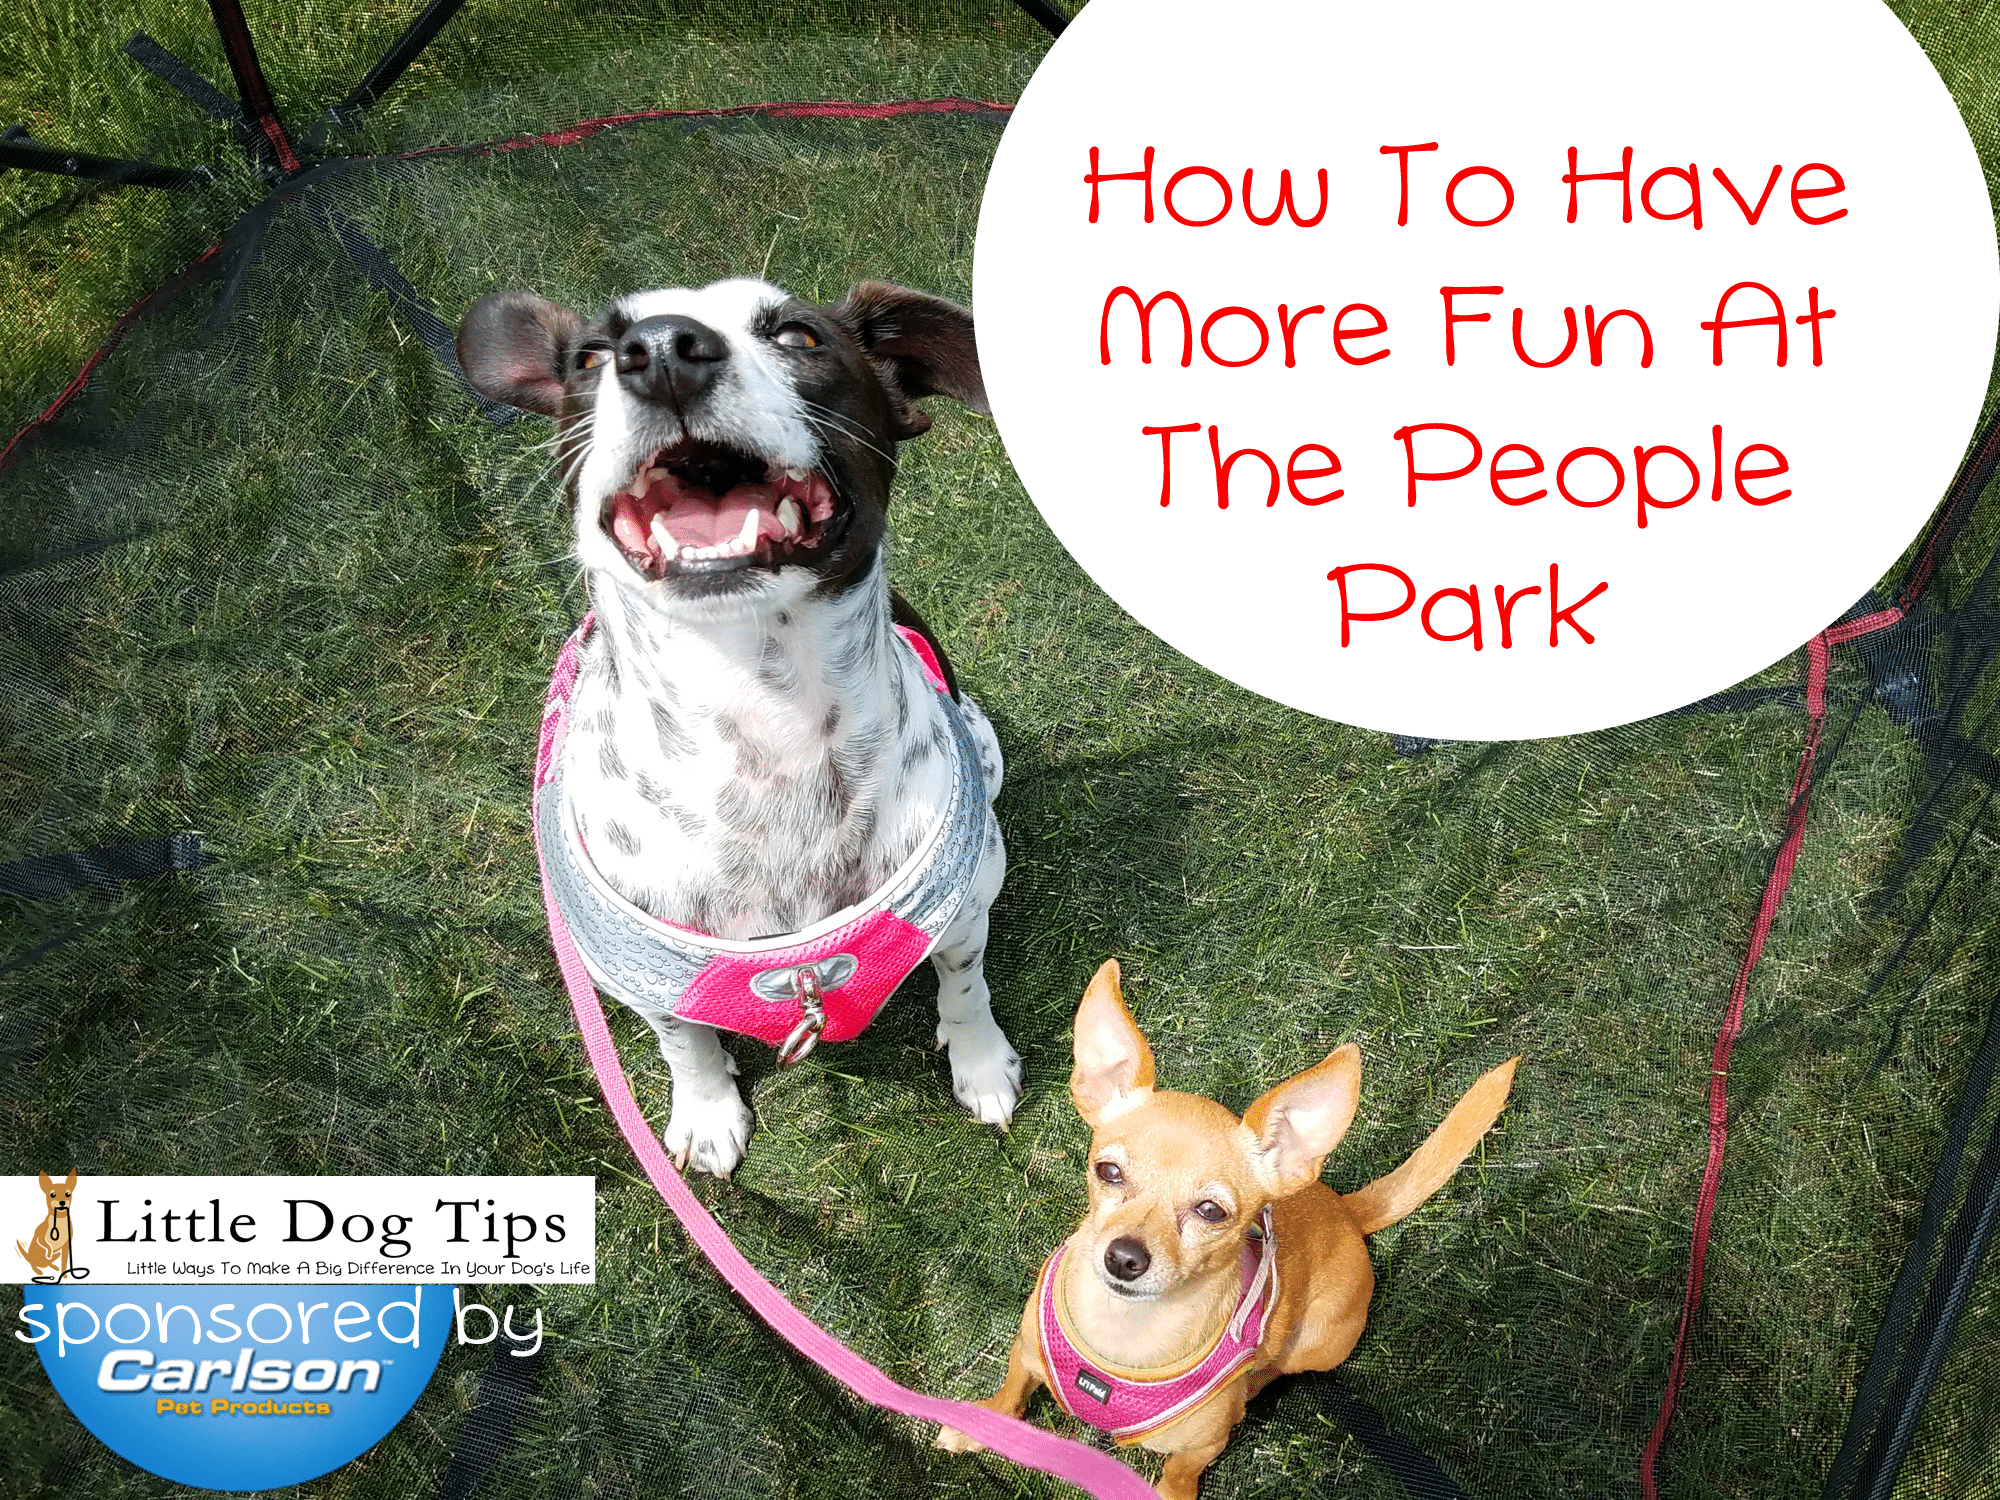 How To Enjoy The People Park With Dogs